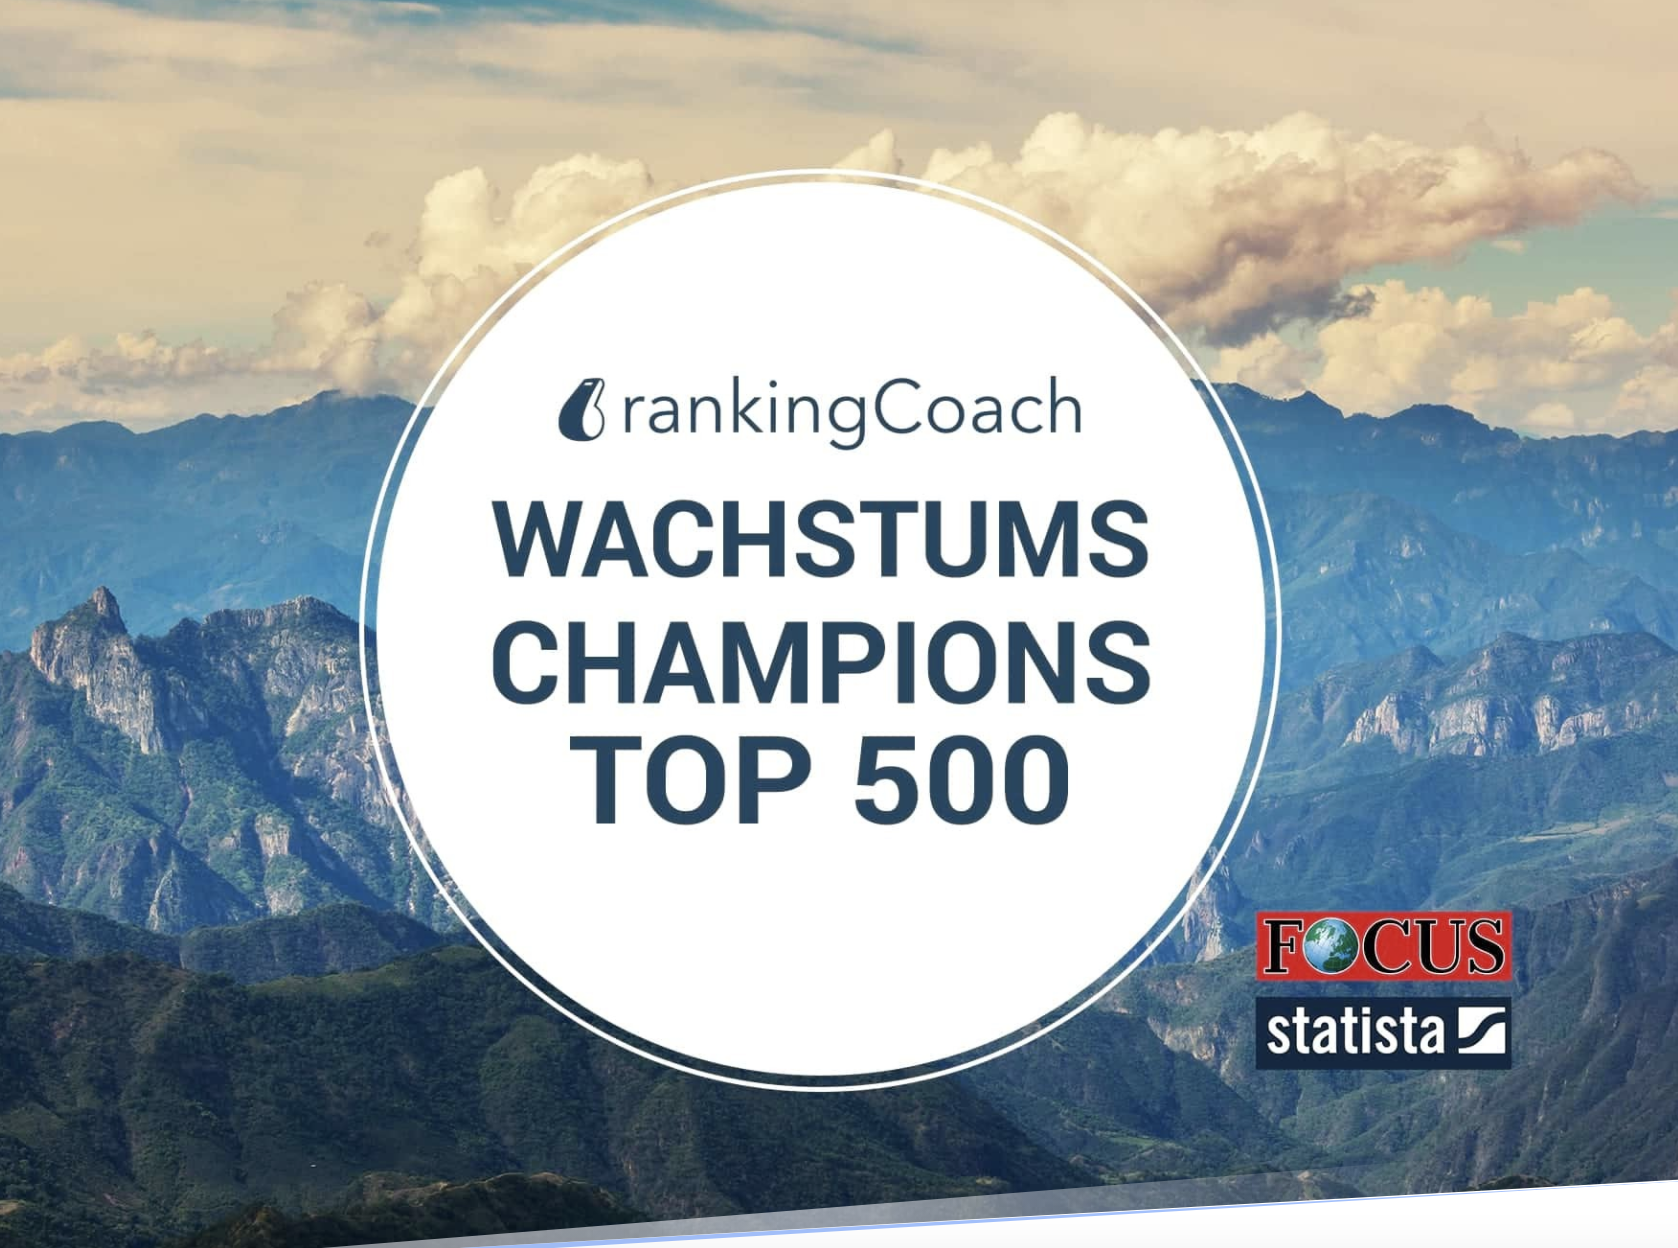 Business Growth Champions 2020: rankingCoach makes the list once again!